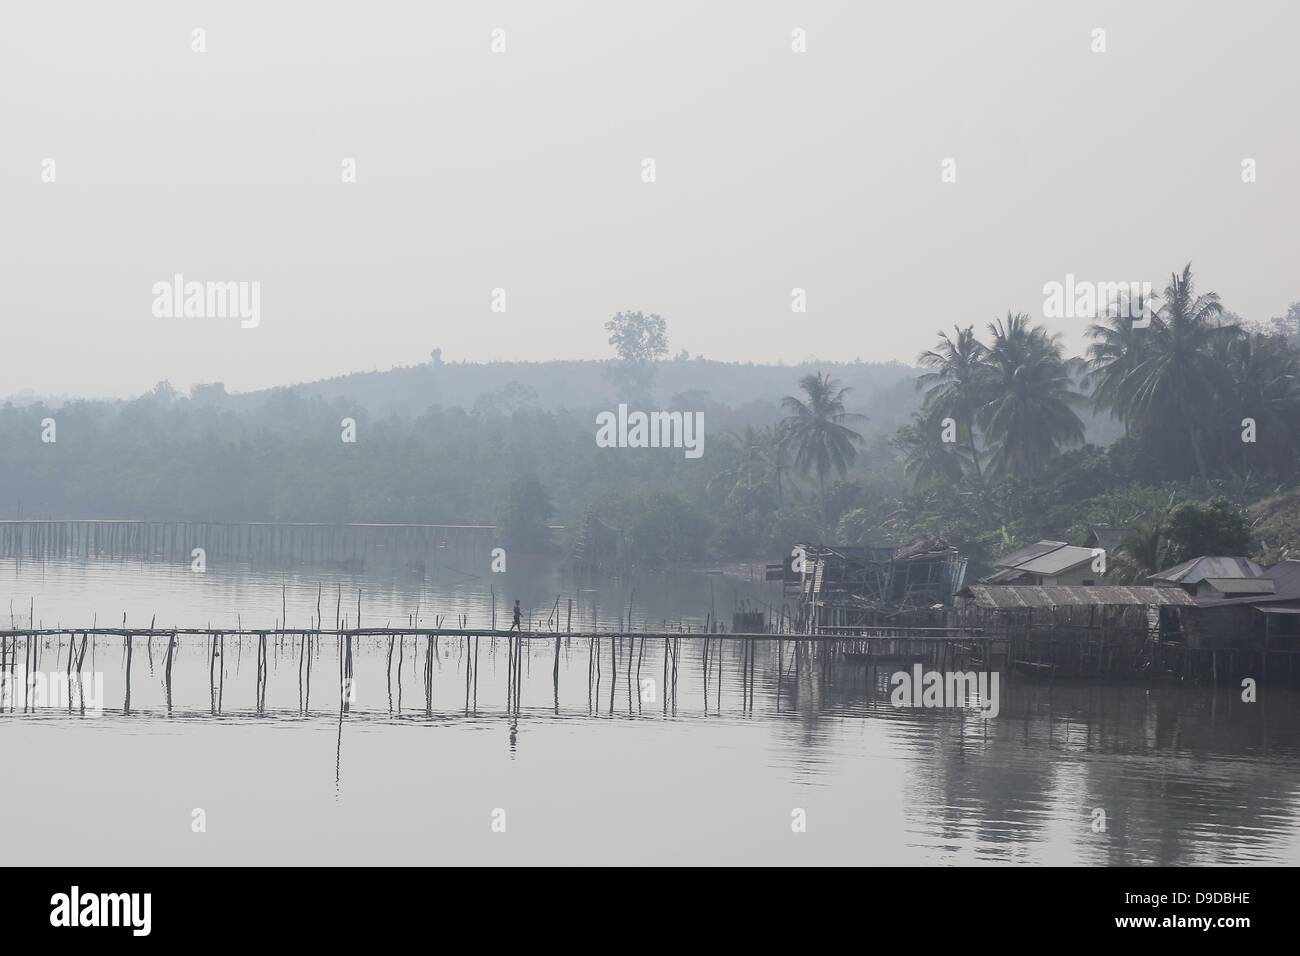 Bintan Island, Indonesia. 18th June, 2013. JUNE 18, 2013:A view of fisherman village with haze air polution arrived - Stock Image